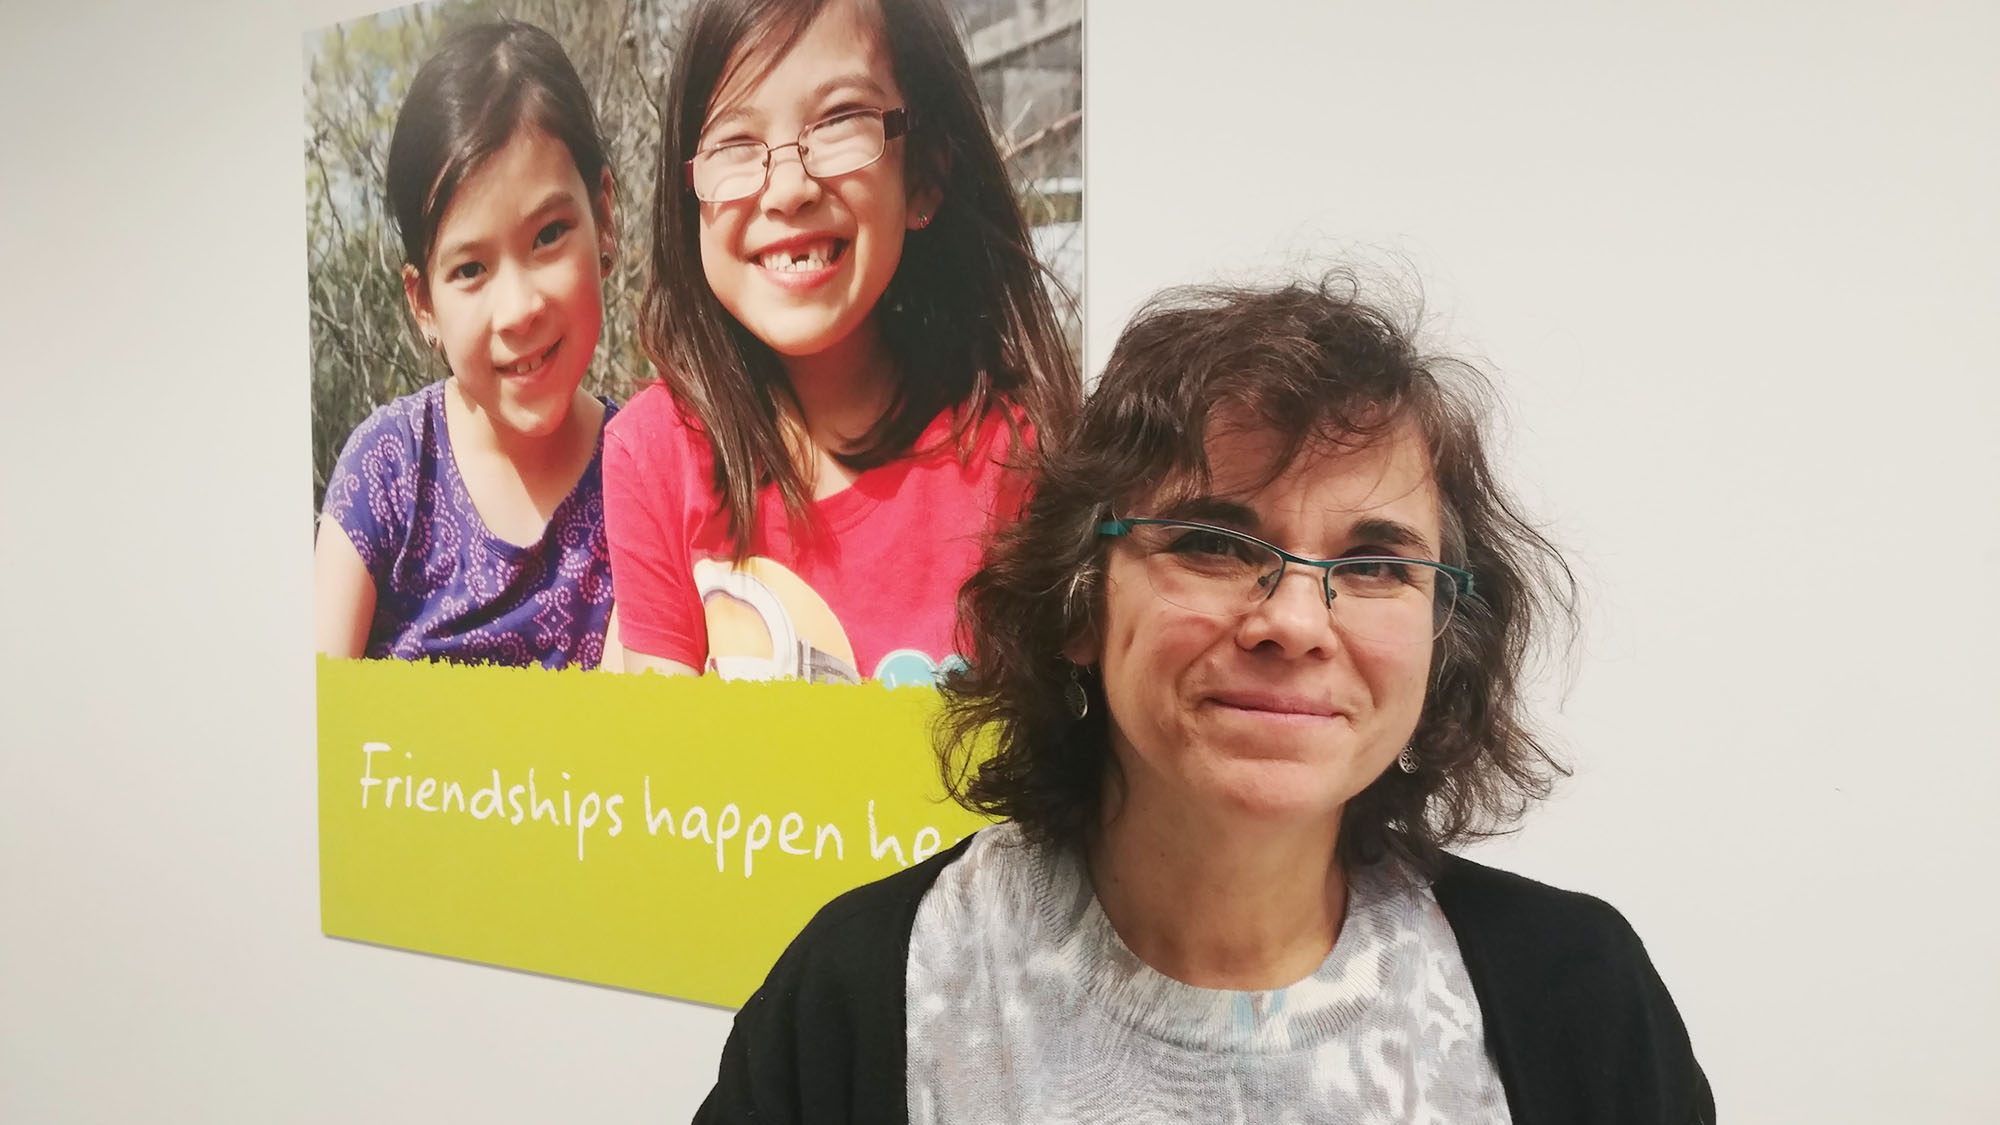 Sylvia Calatayud is with the YMCA's Centre for Immigrant Programs and wants to see the new women's advisory committee make real change from the bottom up.